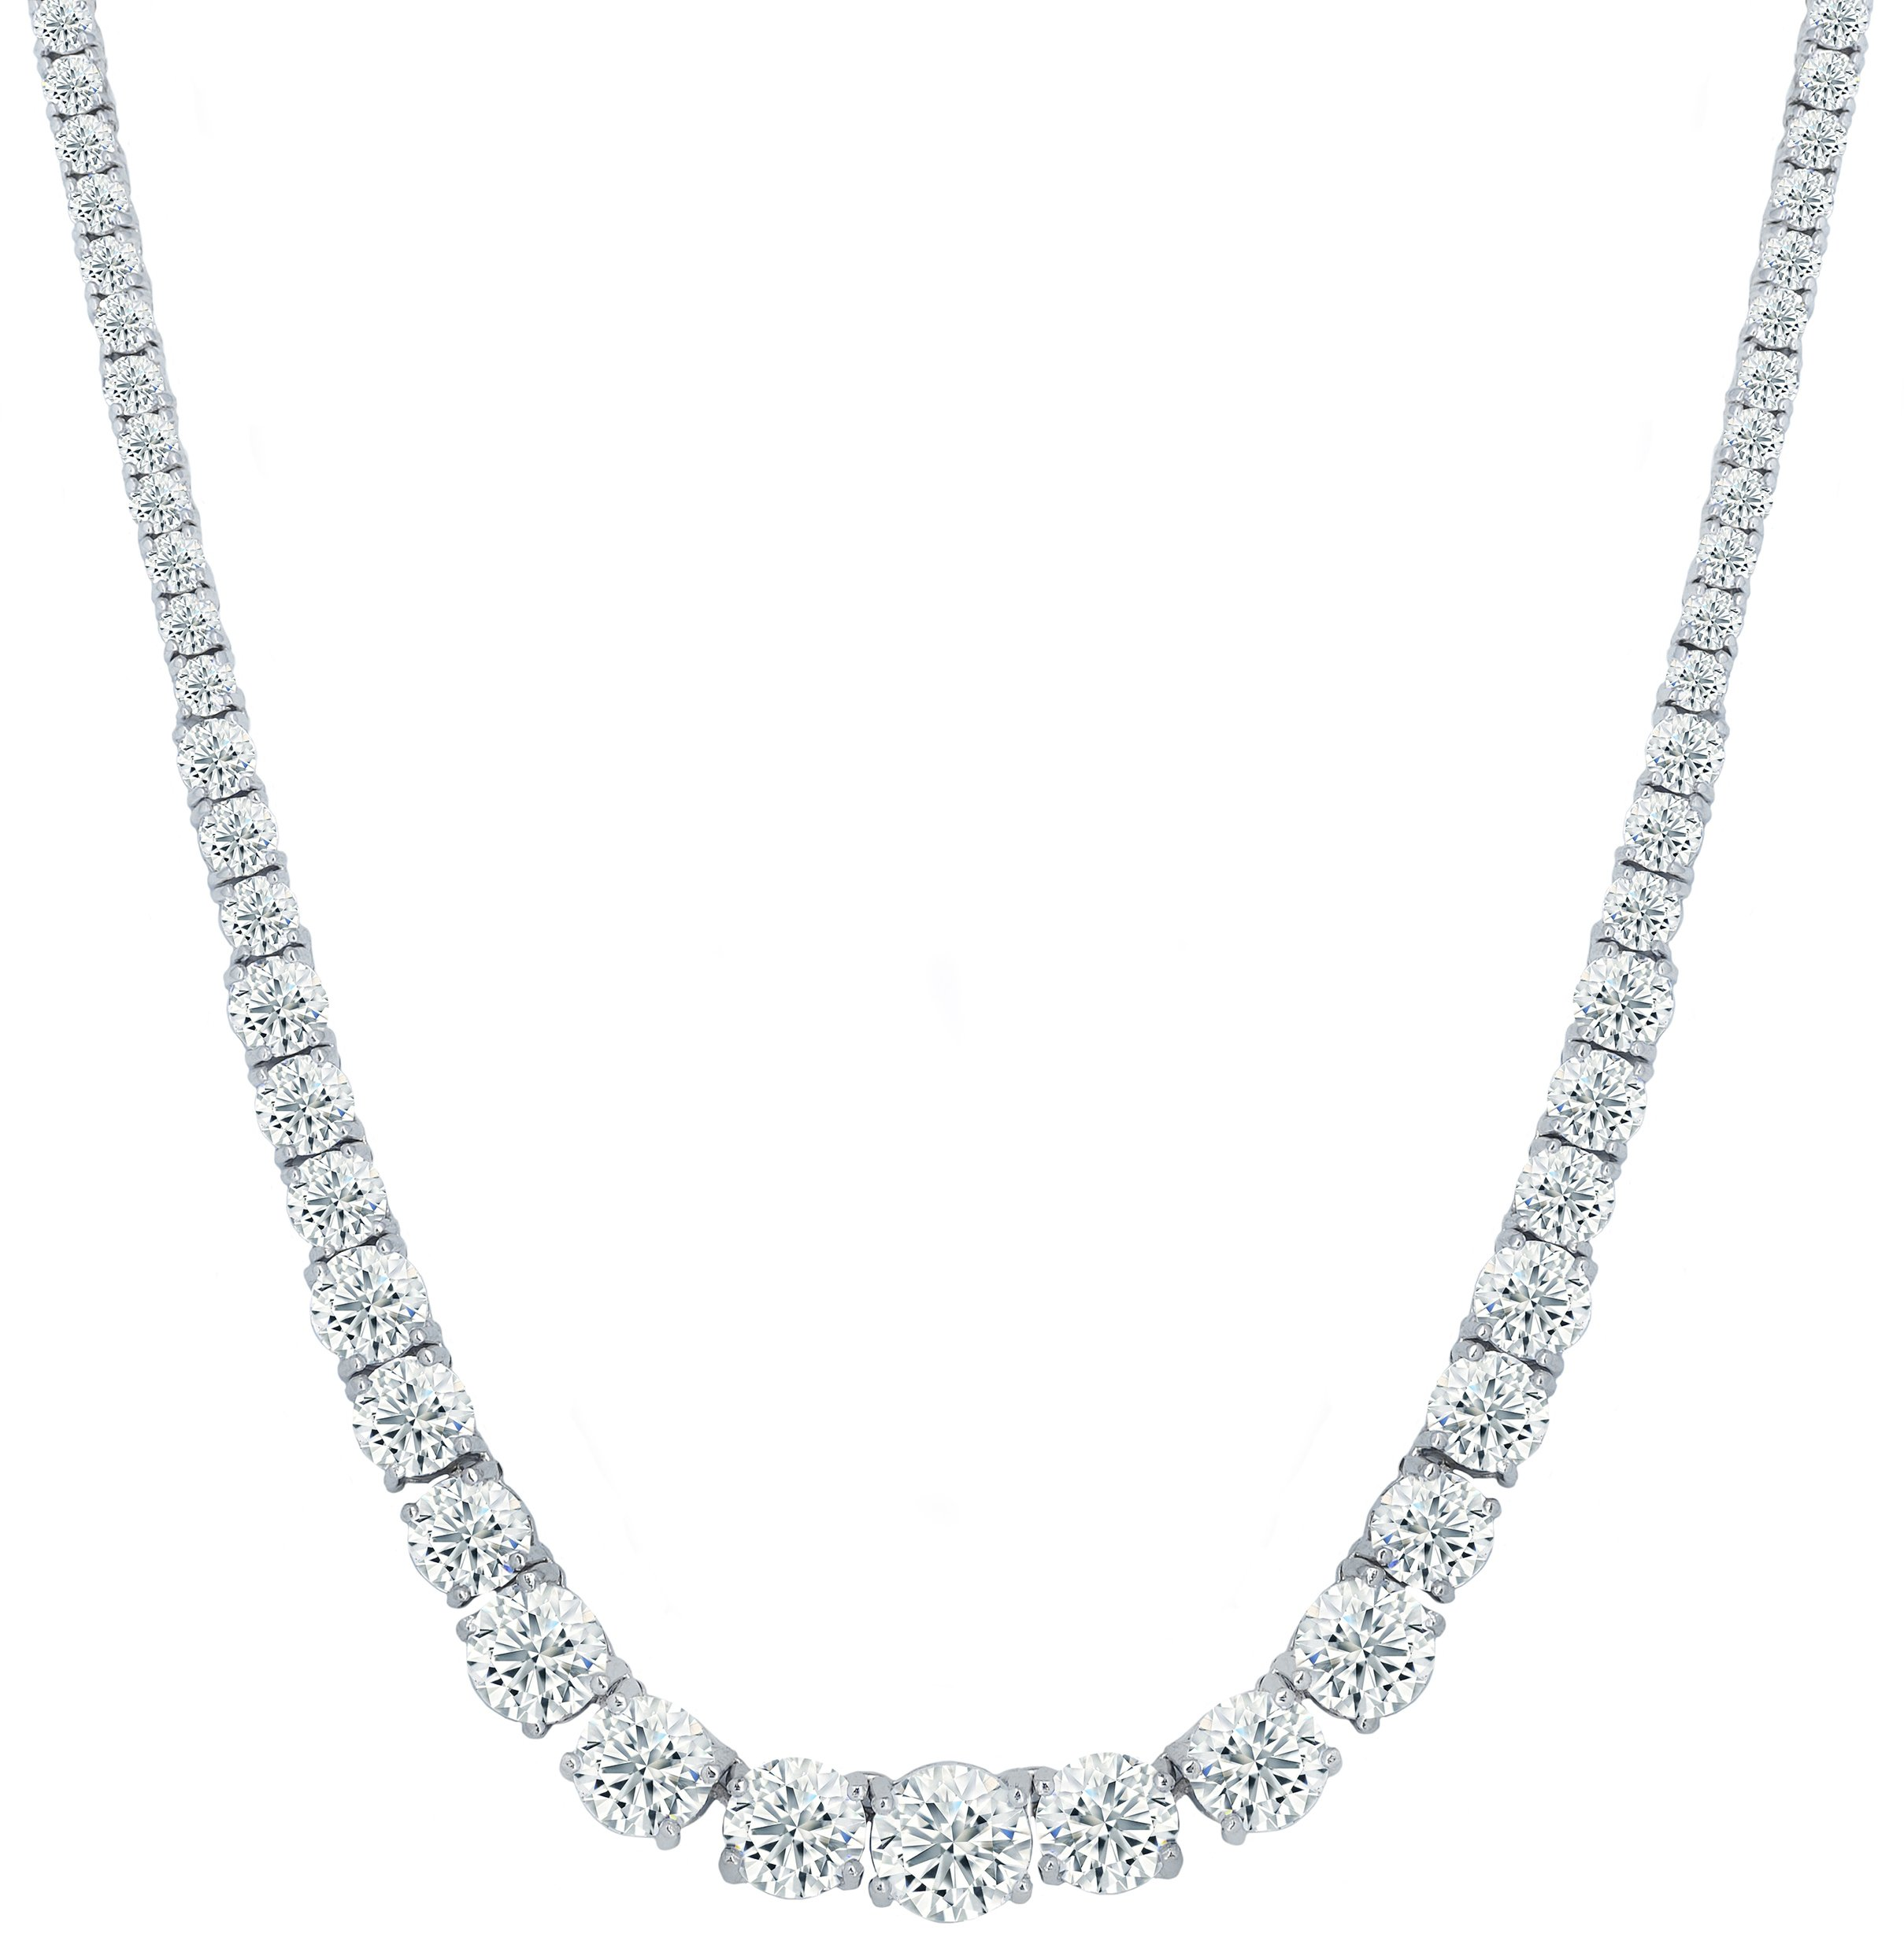 NYC Sterling Womens Magnificent Graduated Round Cubic Zirconia Tennis Necklace